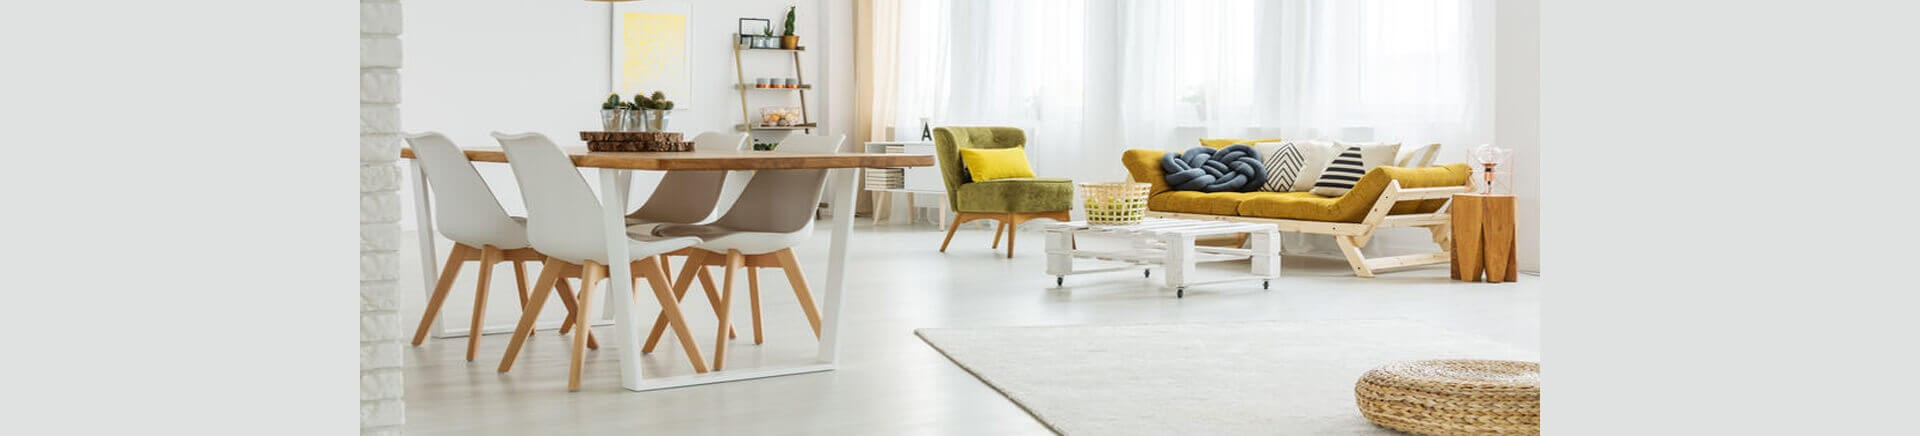 Modern-design-Chairs-available-for-your-dining-room-or-living-room-at-affordable-prices